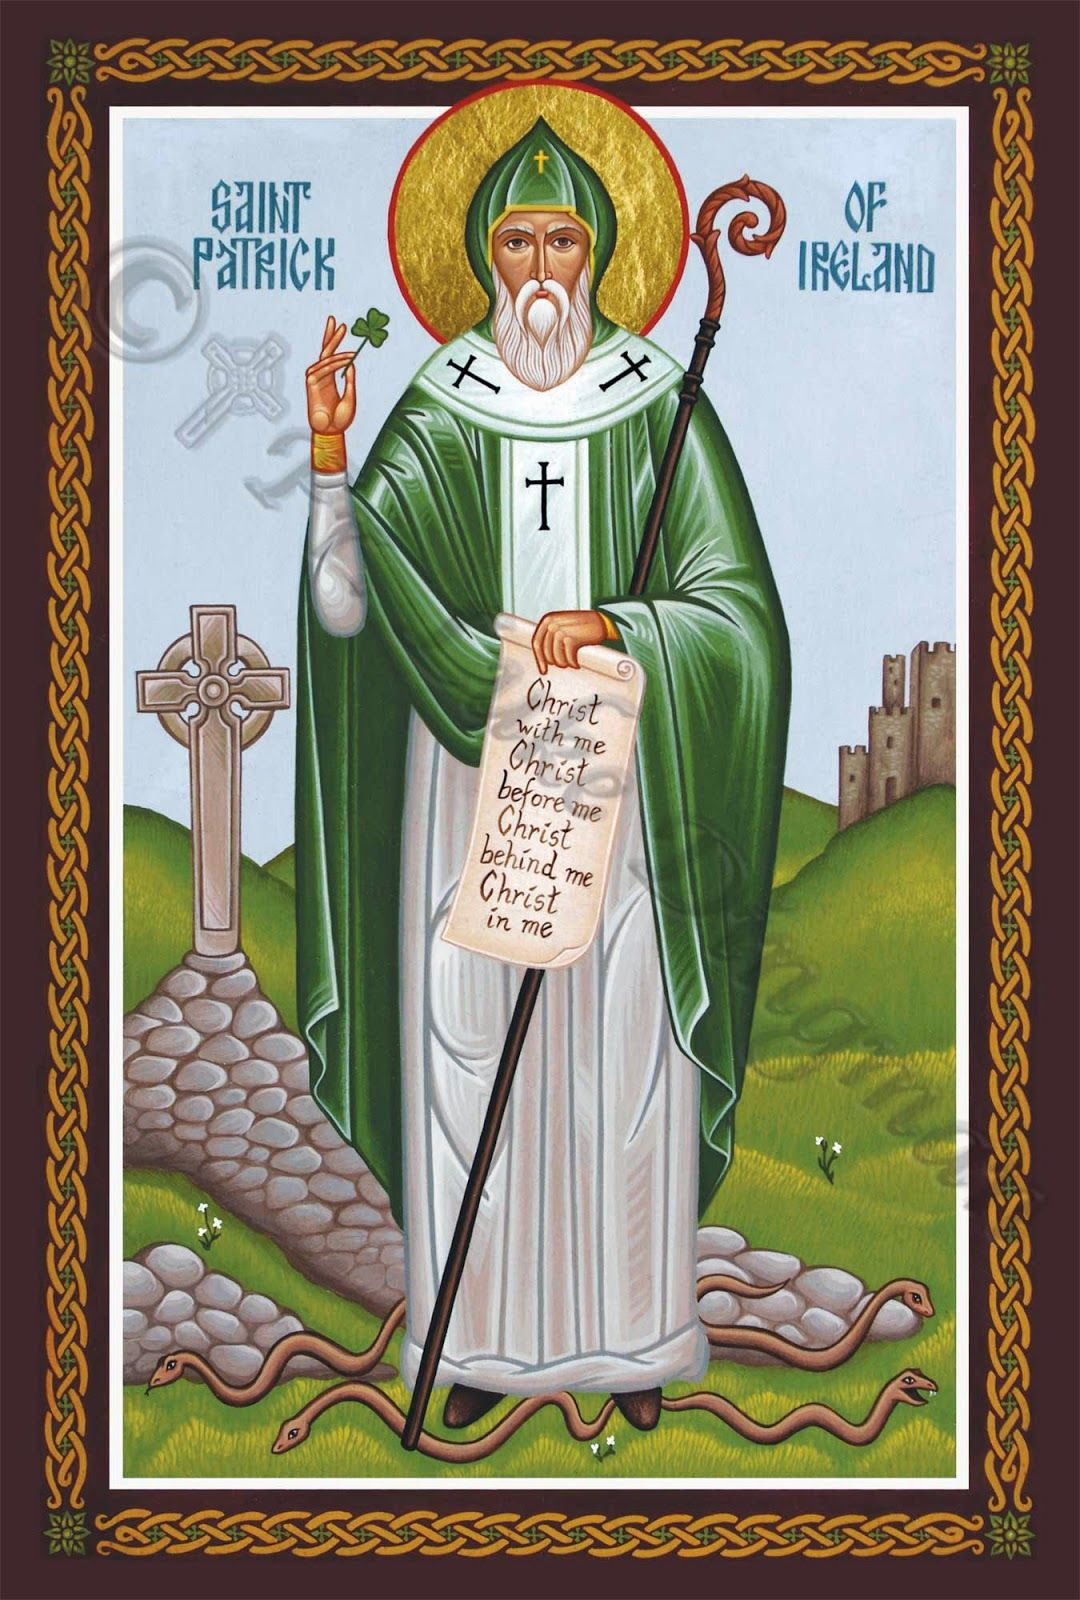 Good Books For Young Souls: A Little Limerick-y Nonsense for St. Patrick's Day